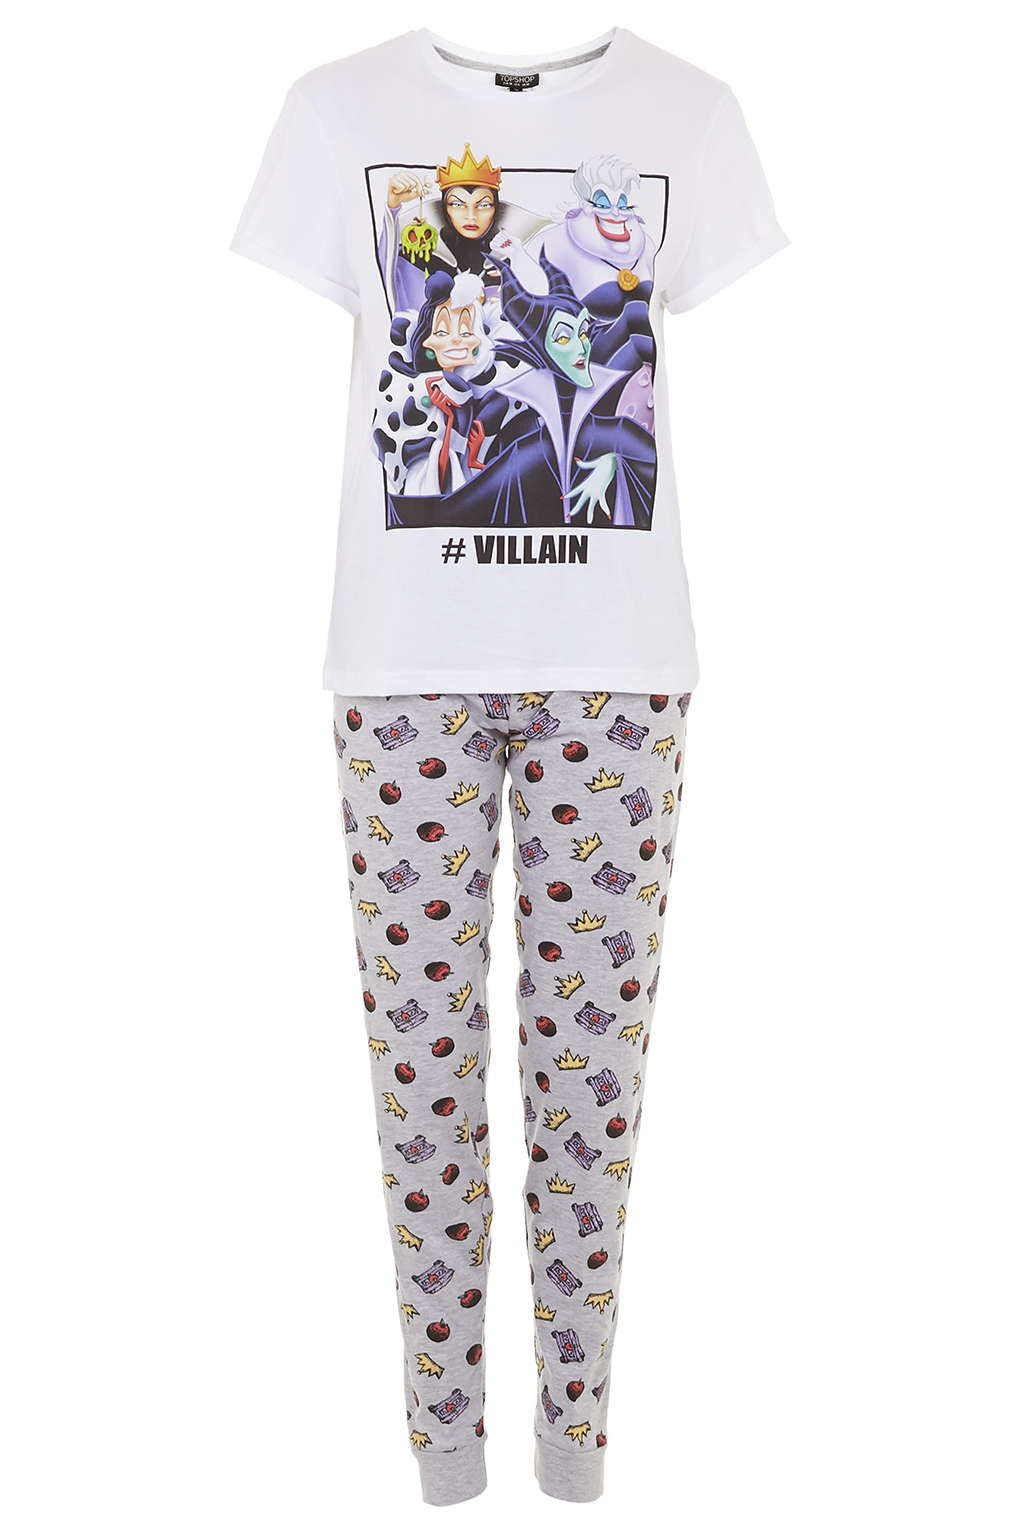 Villains Pyjama Set - Nightwear - Clothing - Topshop  664b749e3